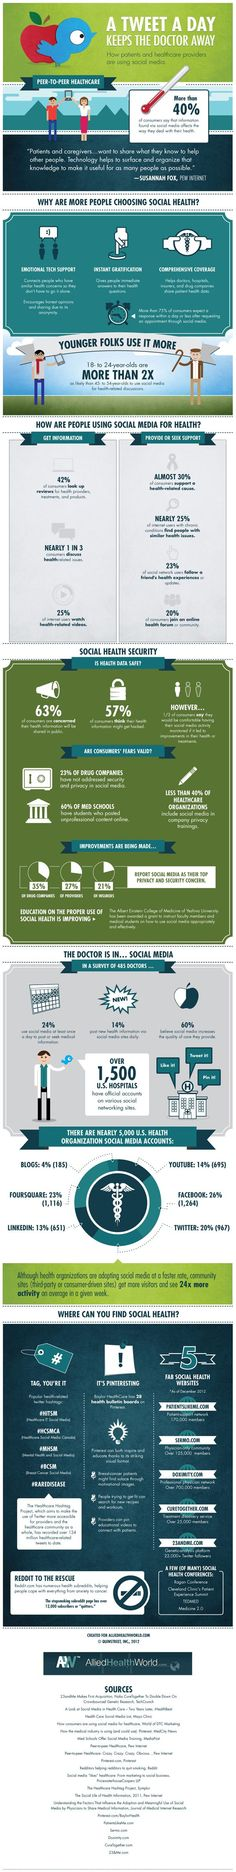 1000+ images about Healthy Decisions on Pinterest | Infographic ...